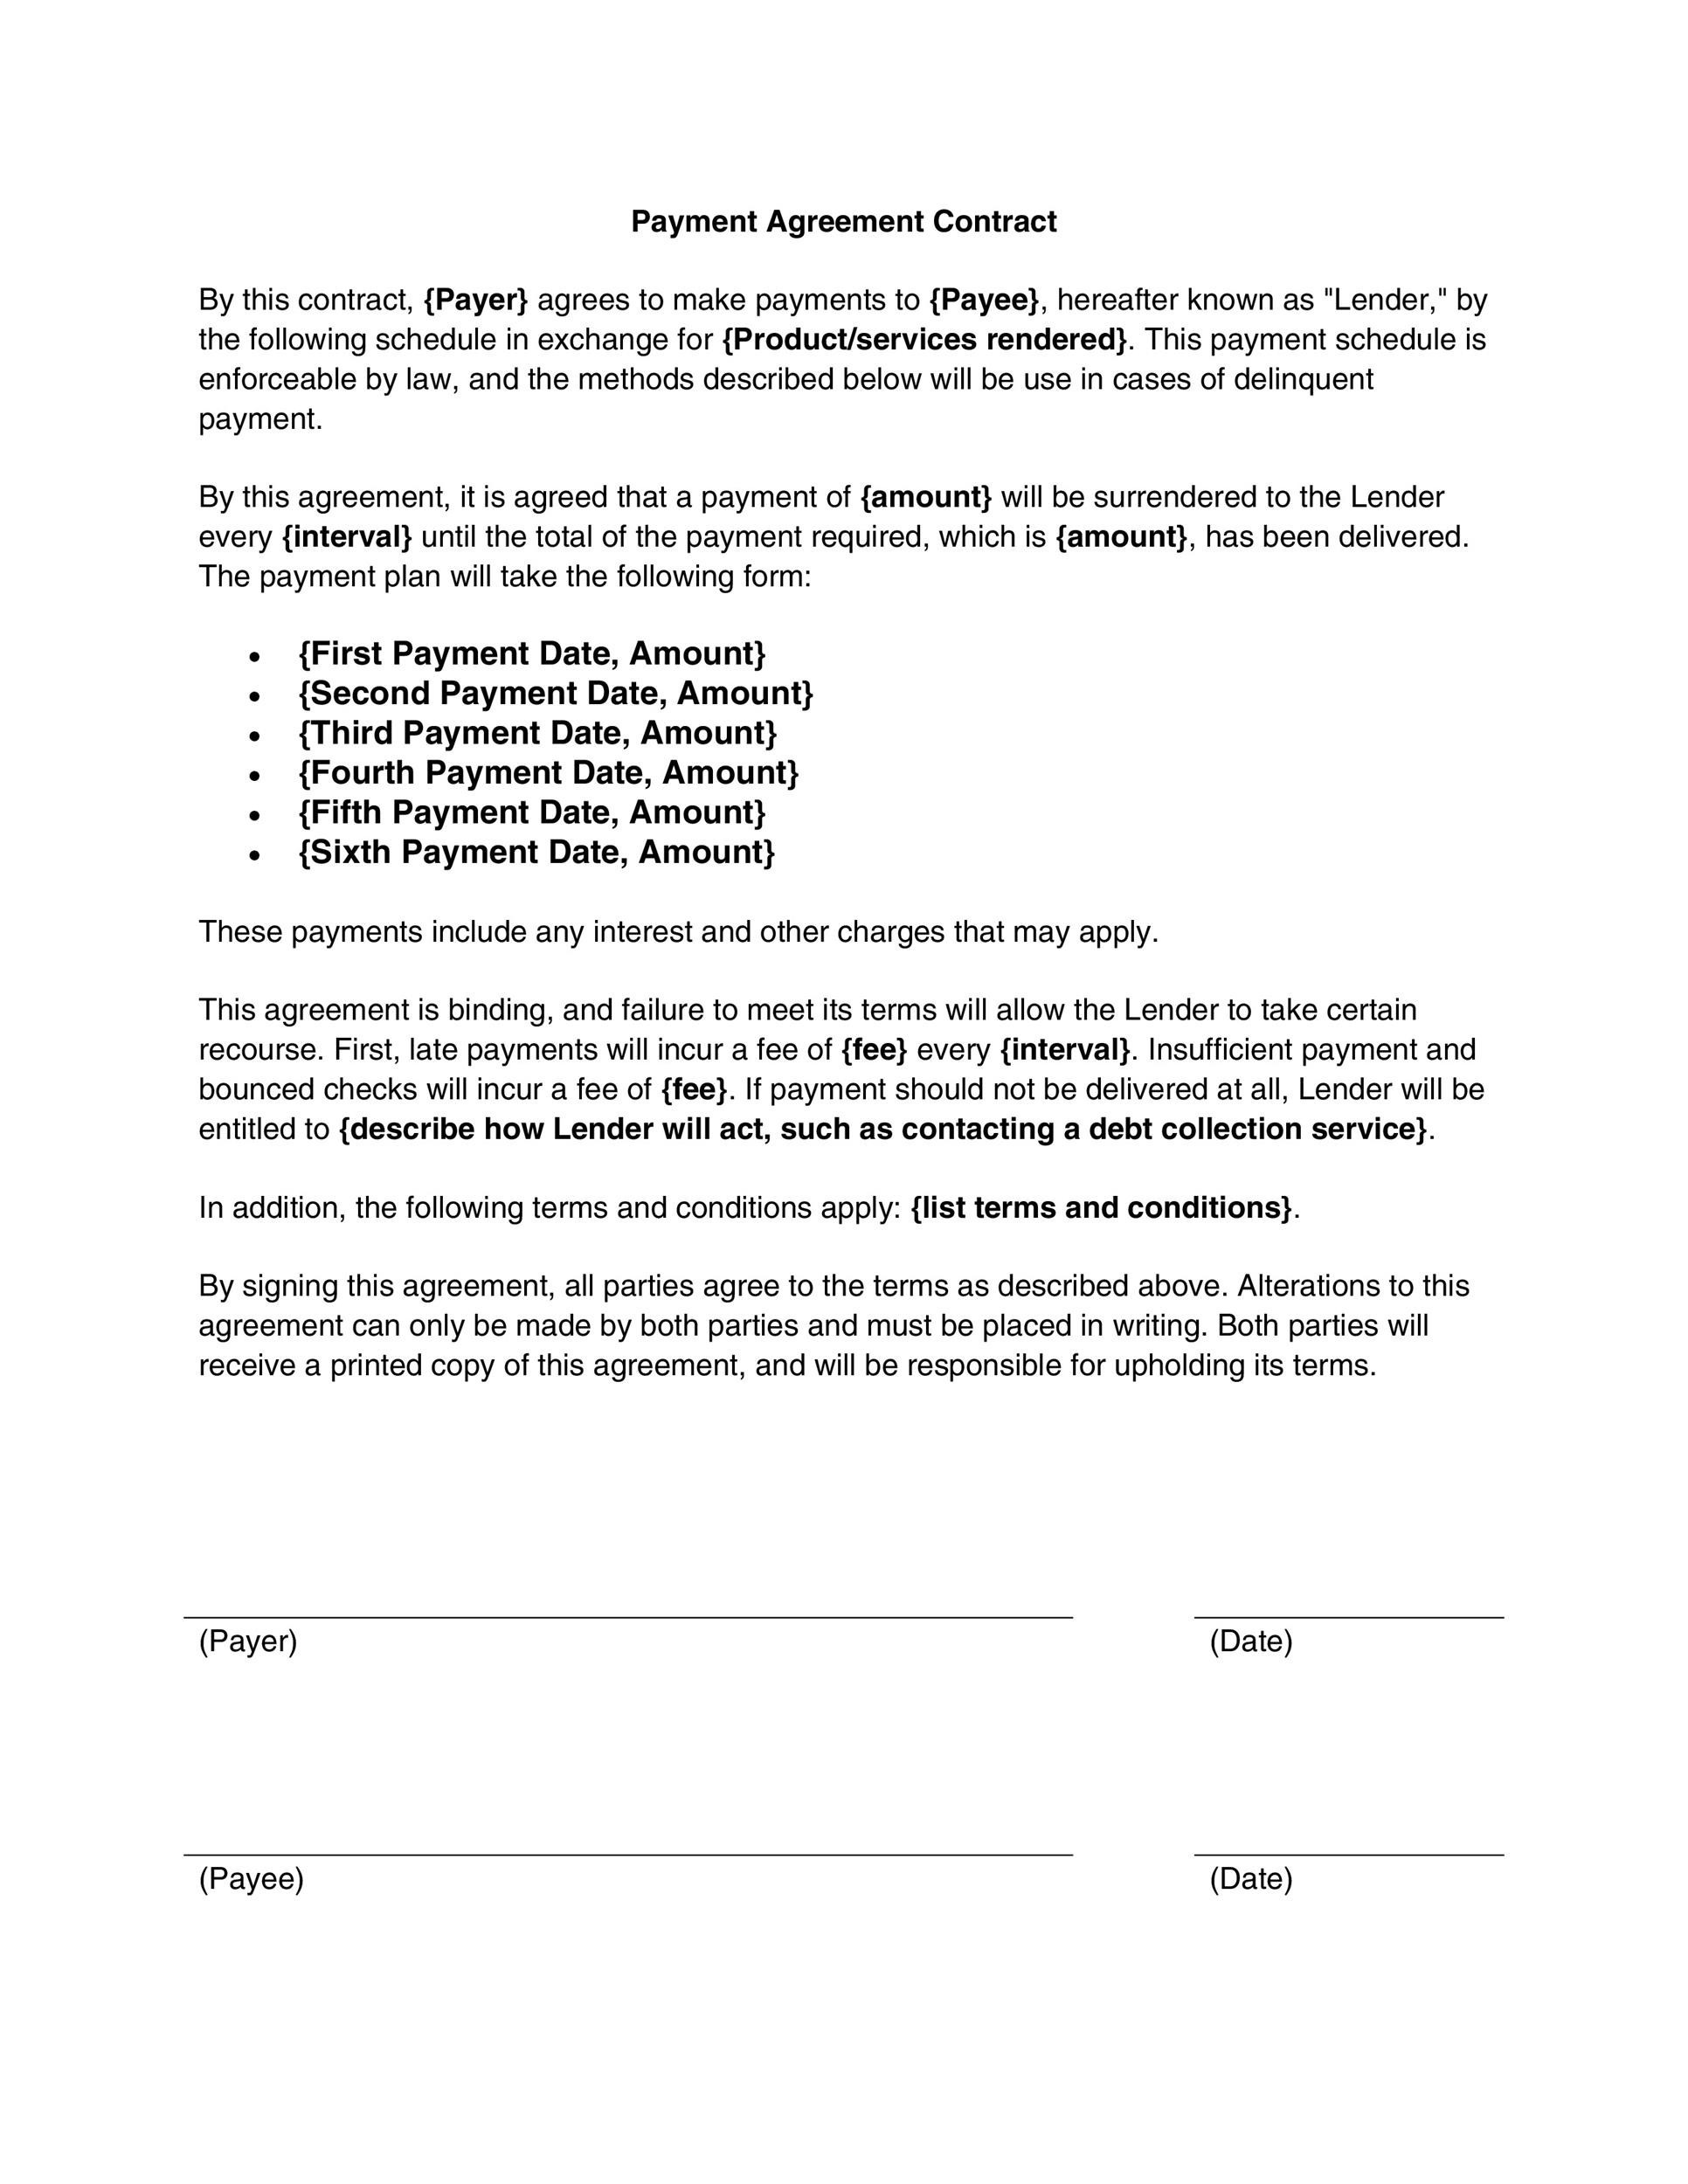 Payment Agreement Contract Contract Template   Great Contract